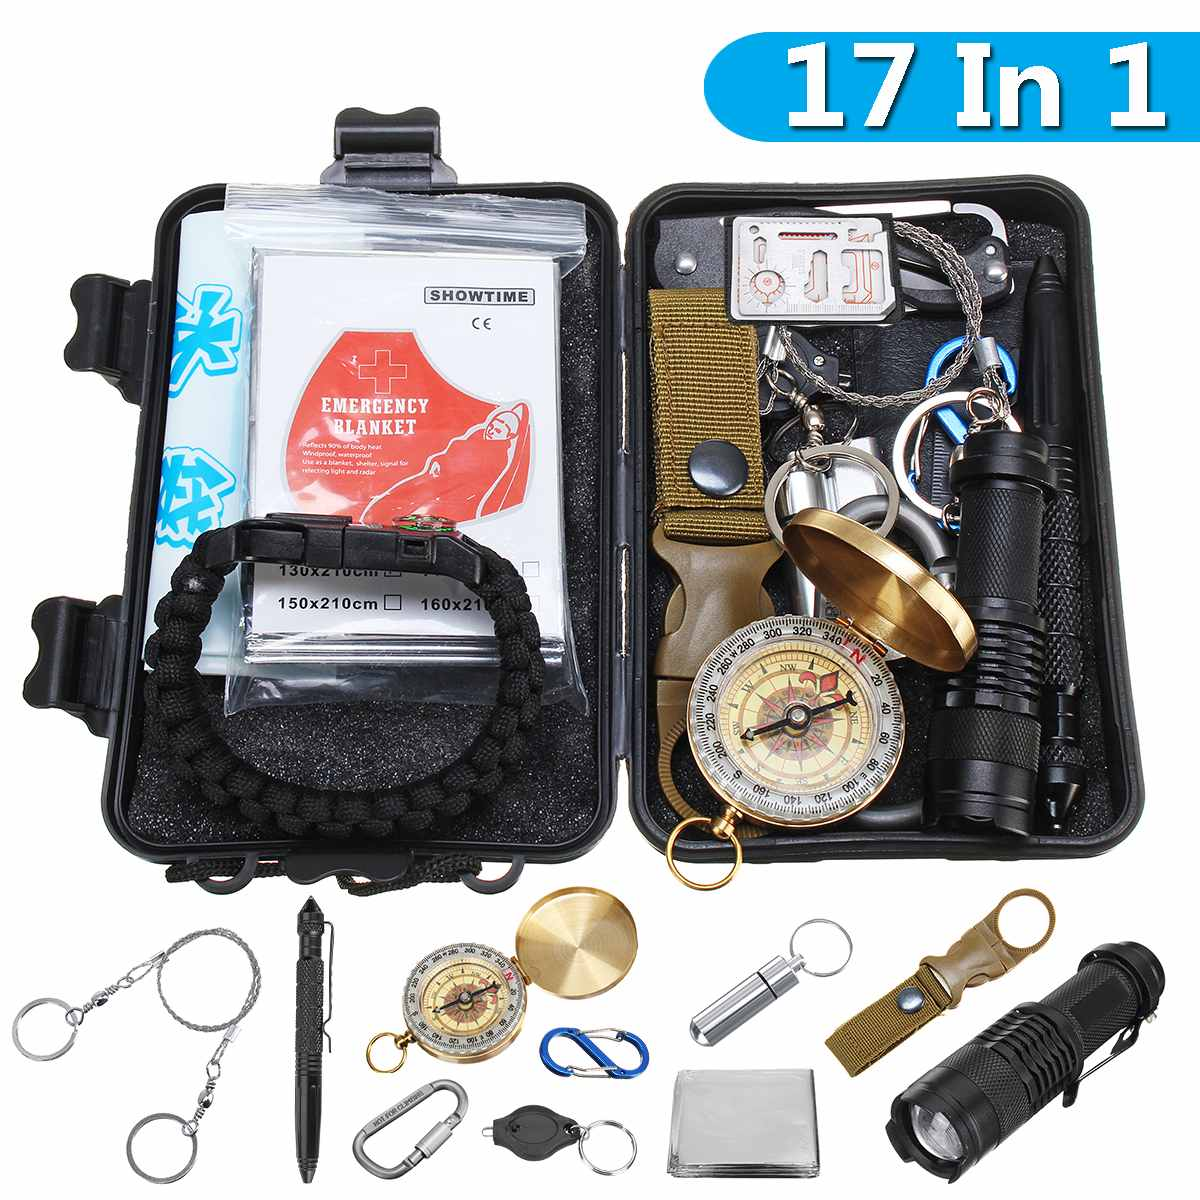 SOS Kit Outdoor Emergency Kit Equipment Box For Camping Survival Gear Portable